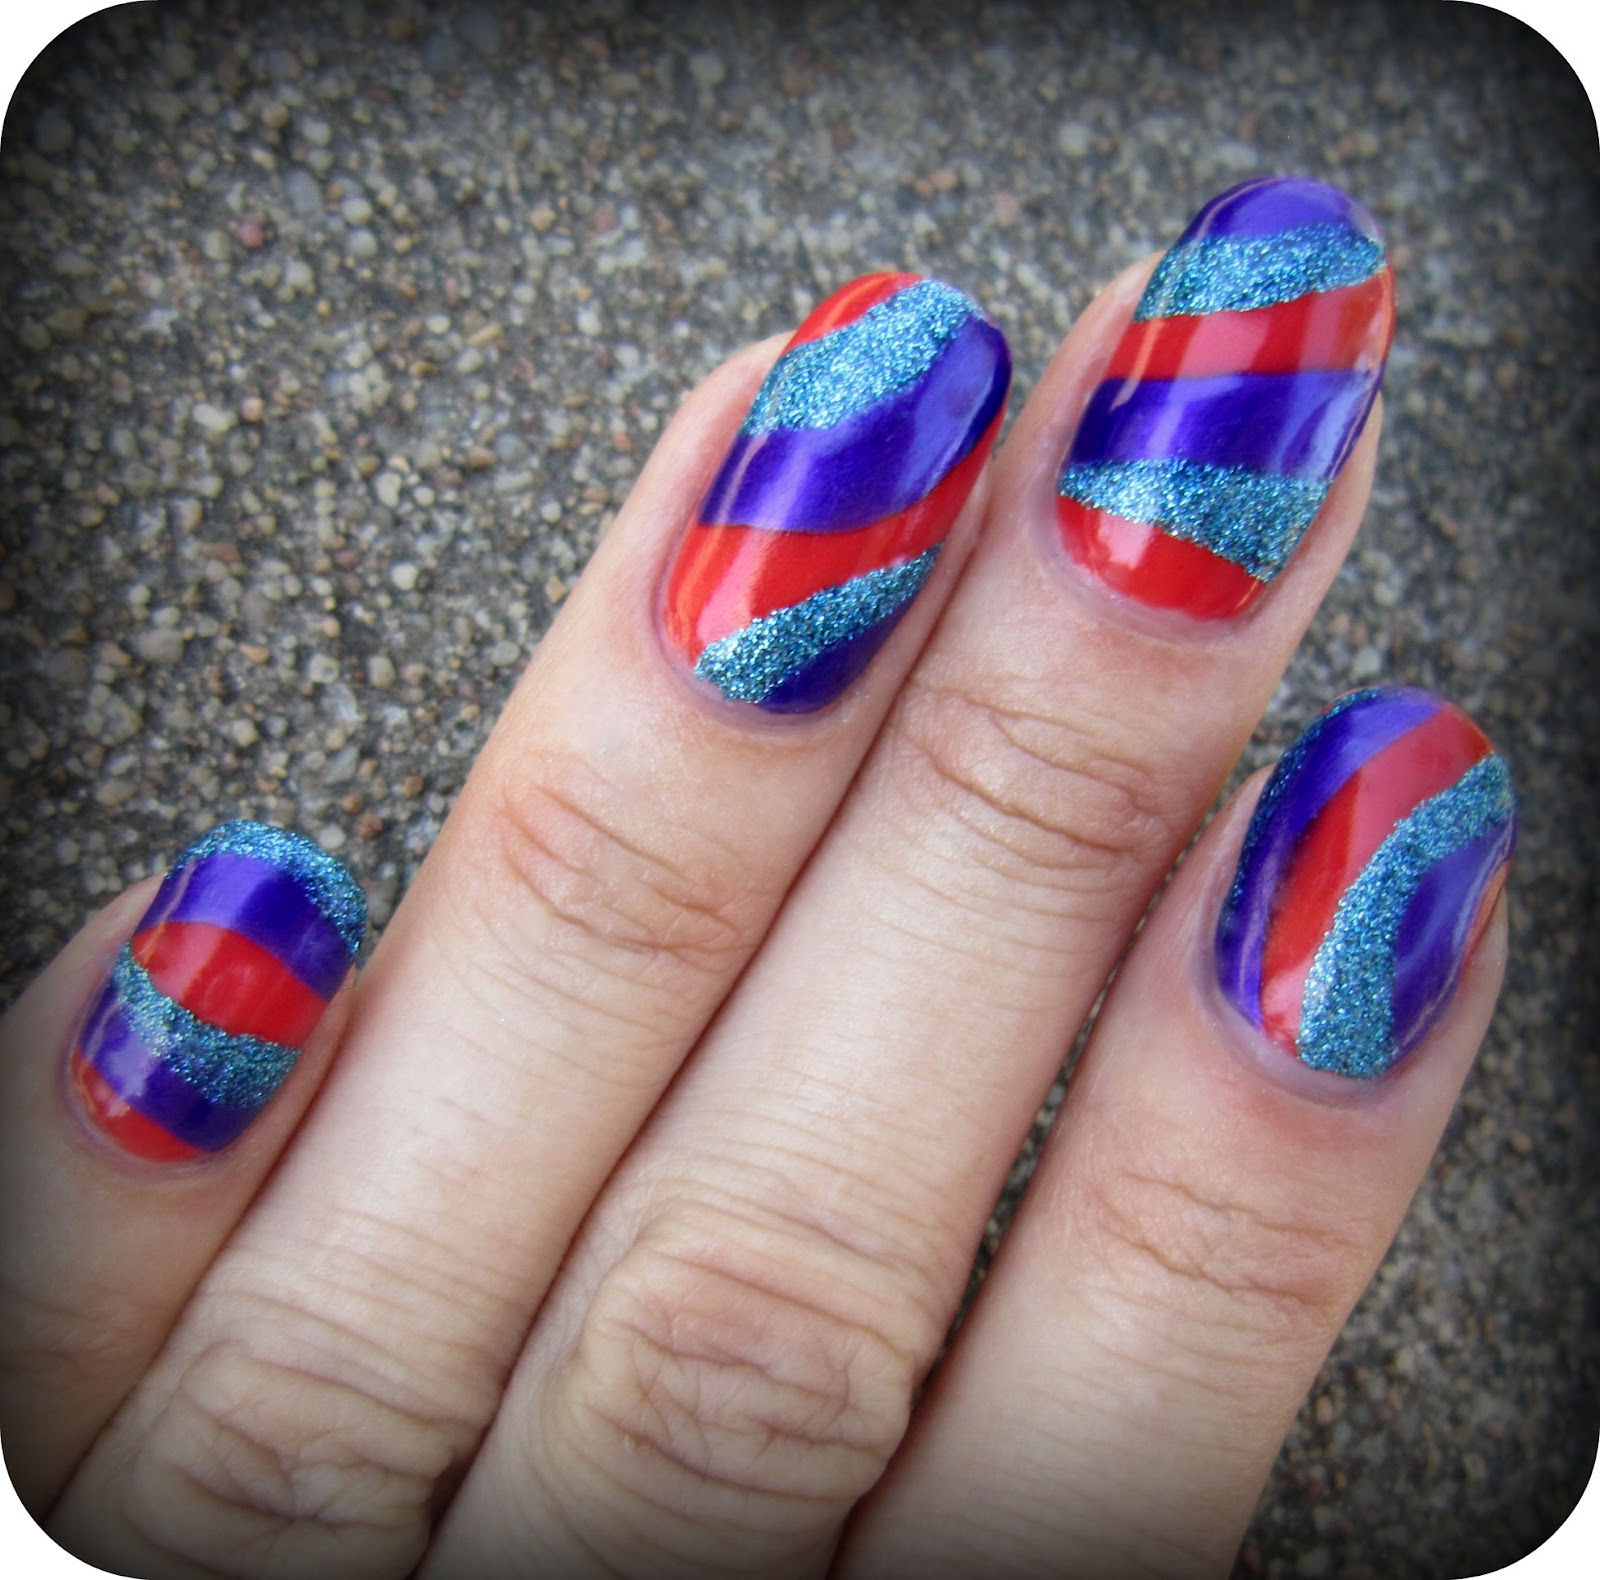 Nail Art: Concrete And Nail Polish: Striped Nail Art